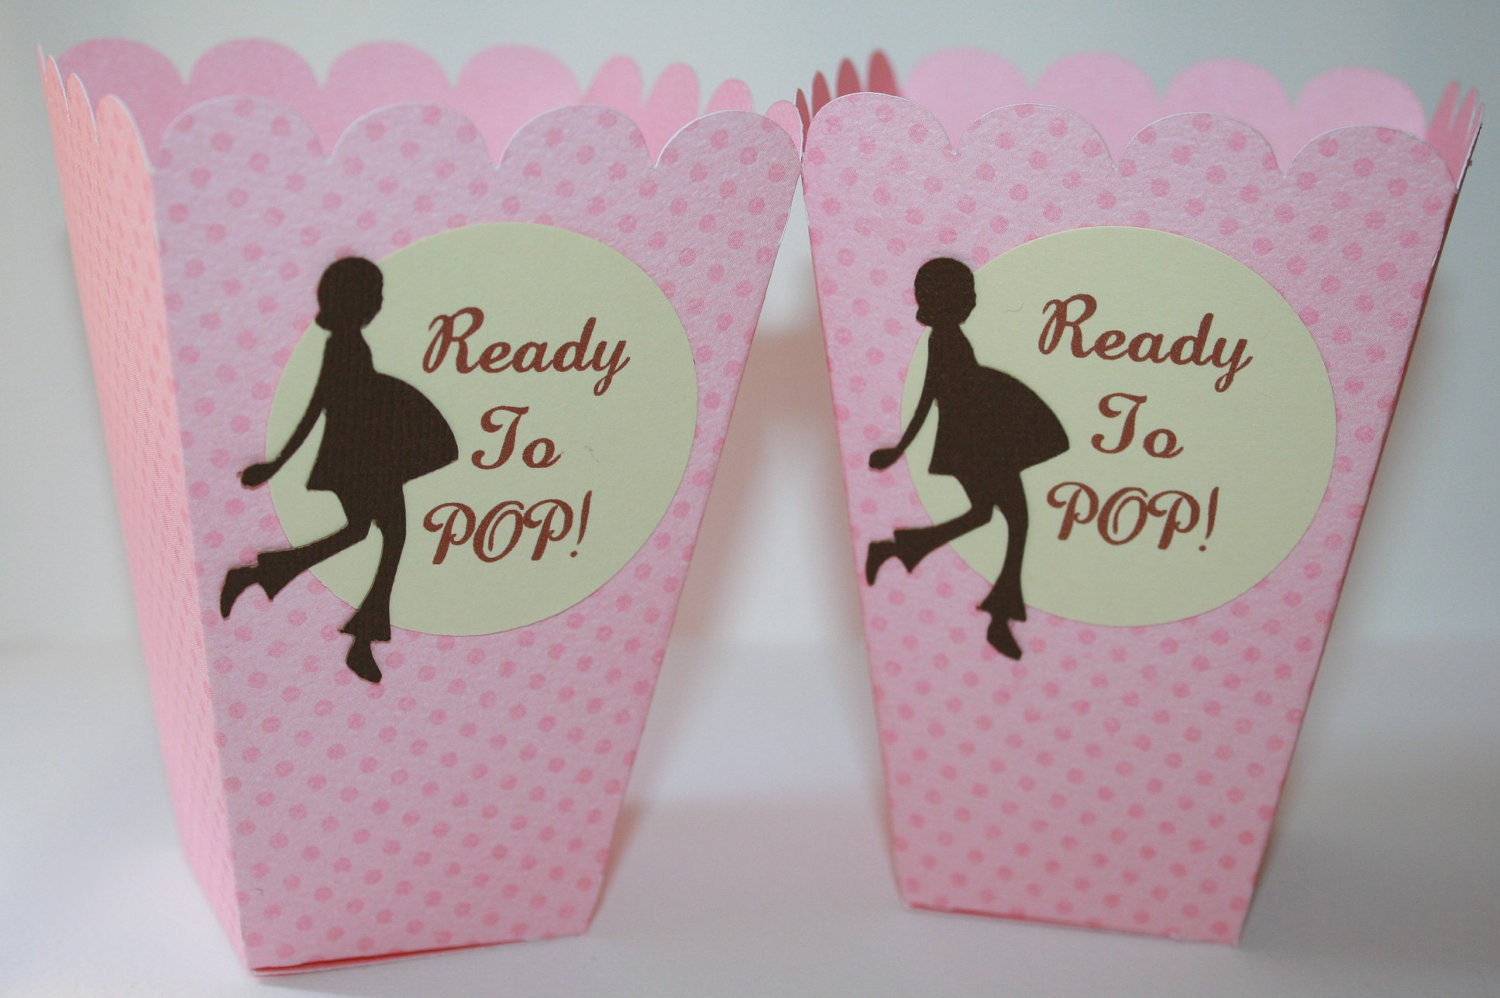 10 popcorn boxes ready to pop choose your by embellishedpaper for Ready to pop popcorn boxes